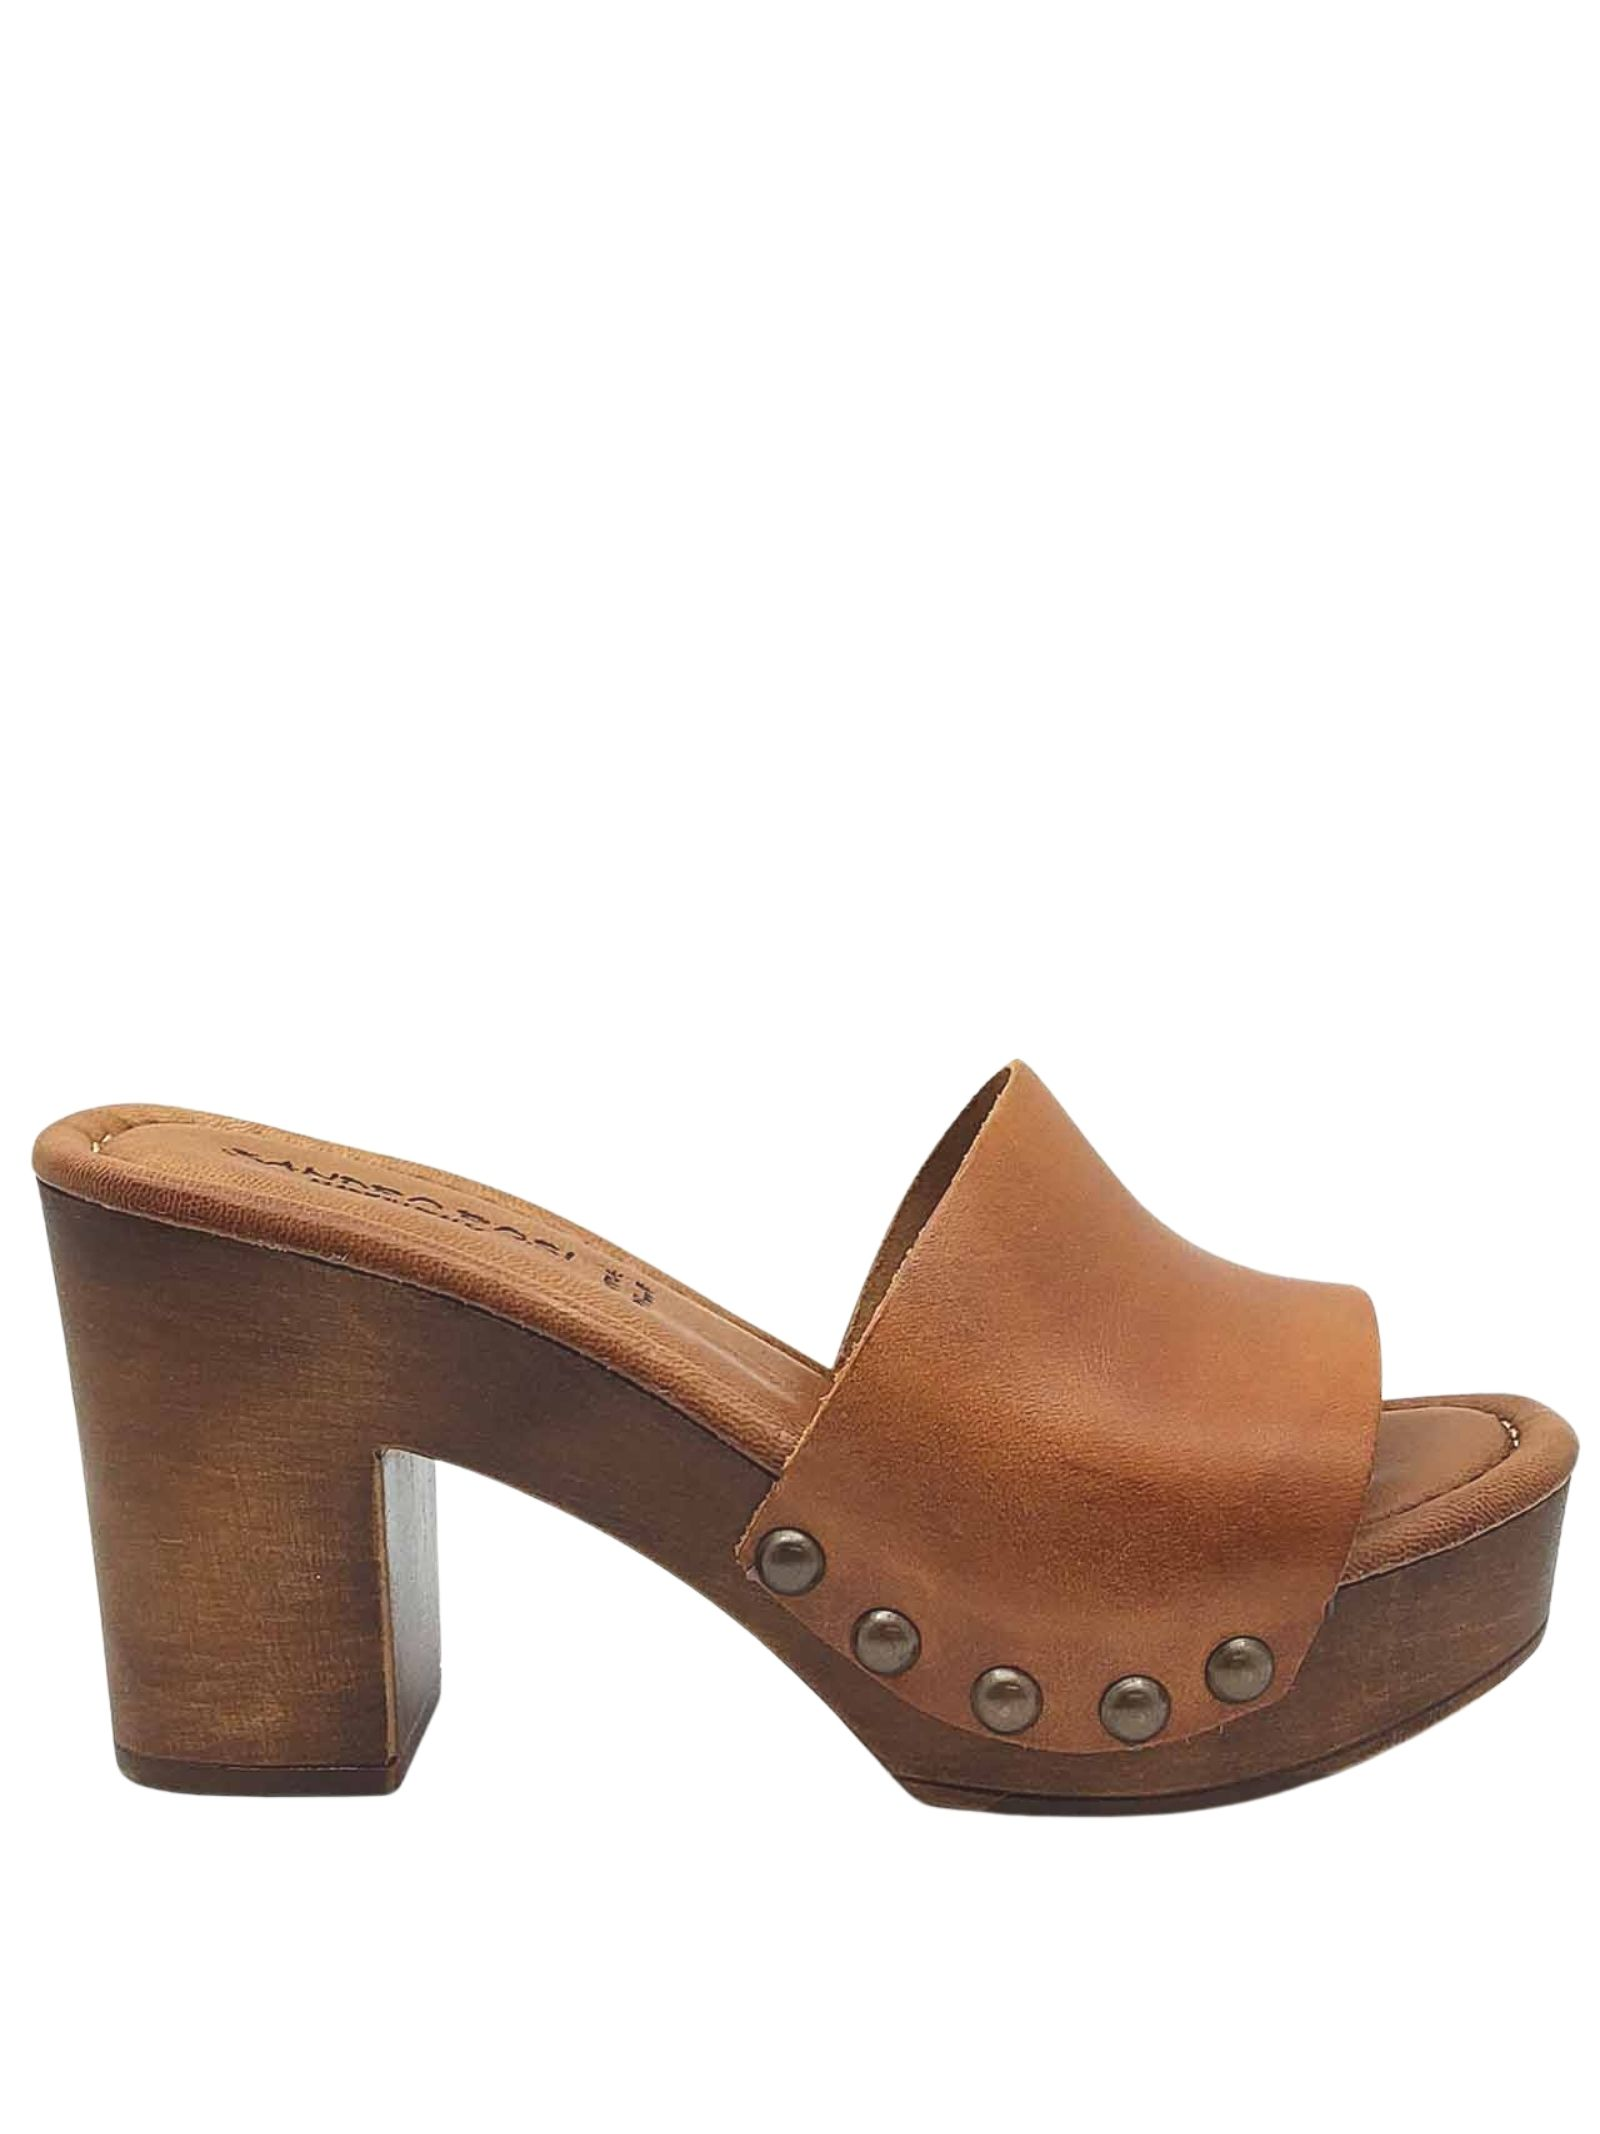 Women's Shoes Leather Sandals with Wooden Wedge Sandro Rosi | Wedge Sandals | 7065014